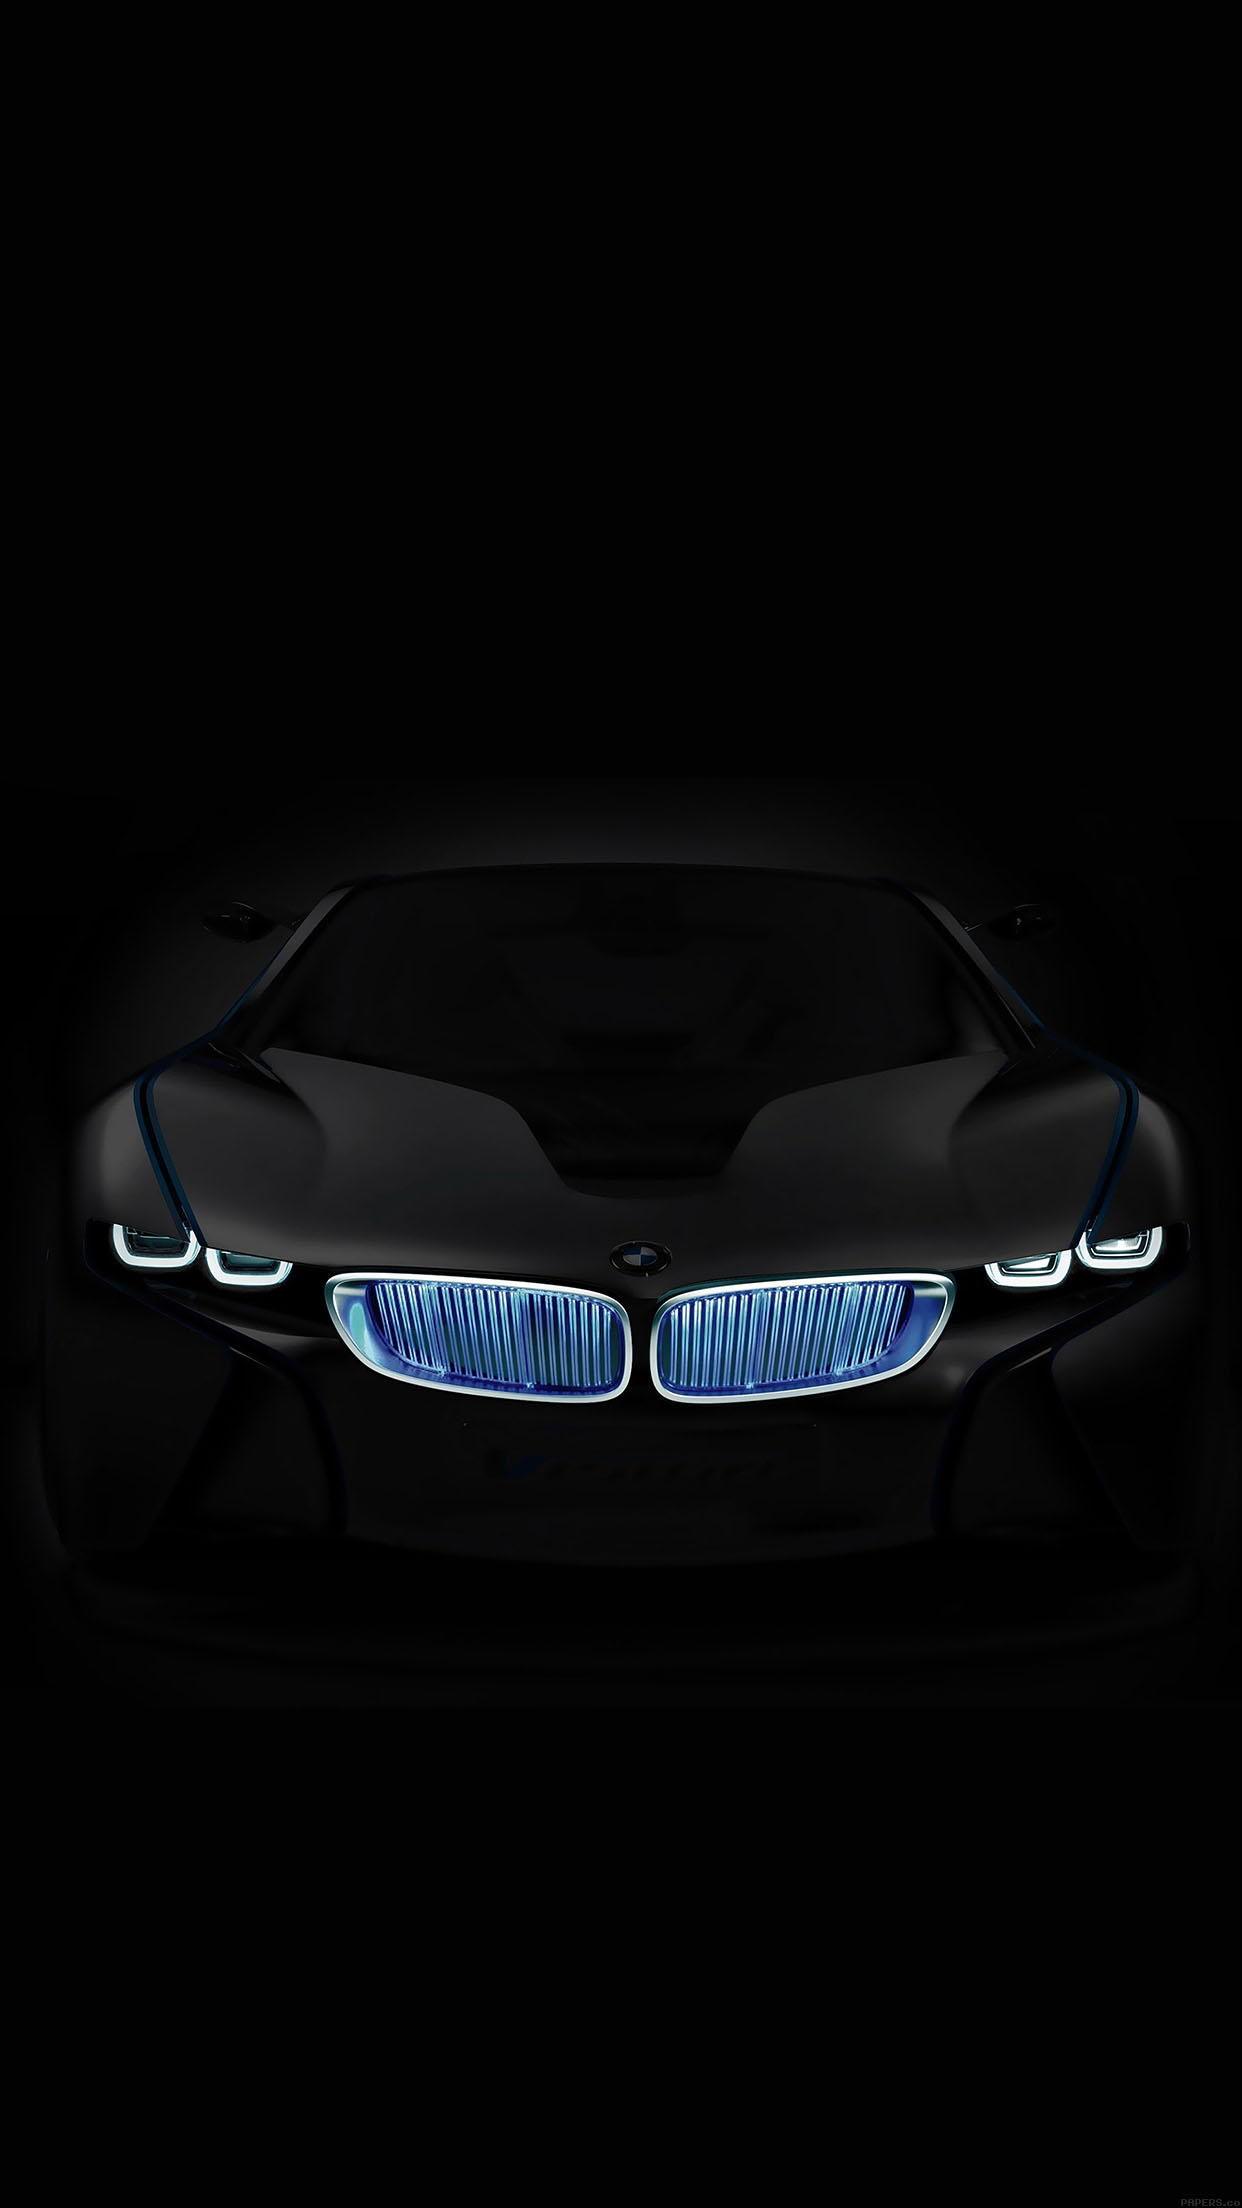 Iphone6papers Aa58 Bmw In Dark Car Art